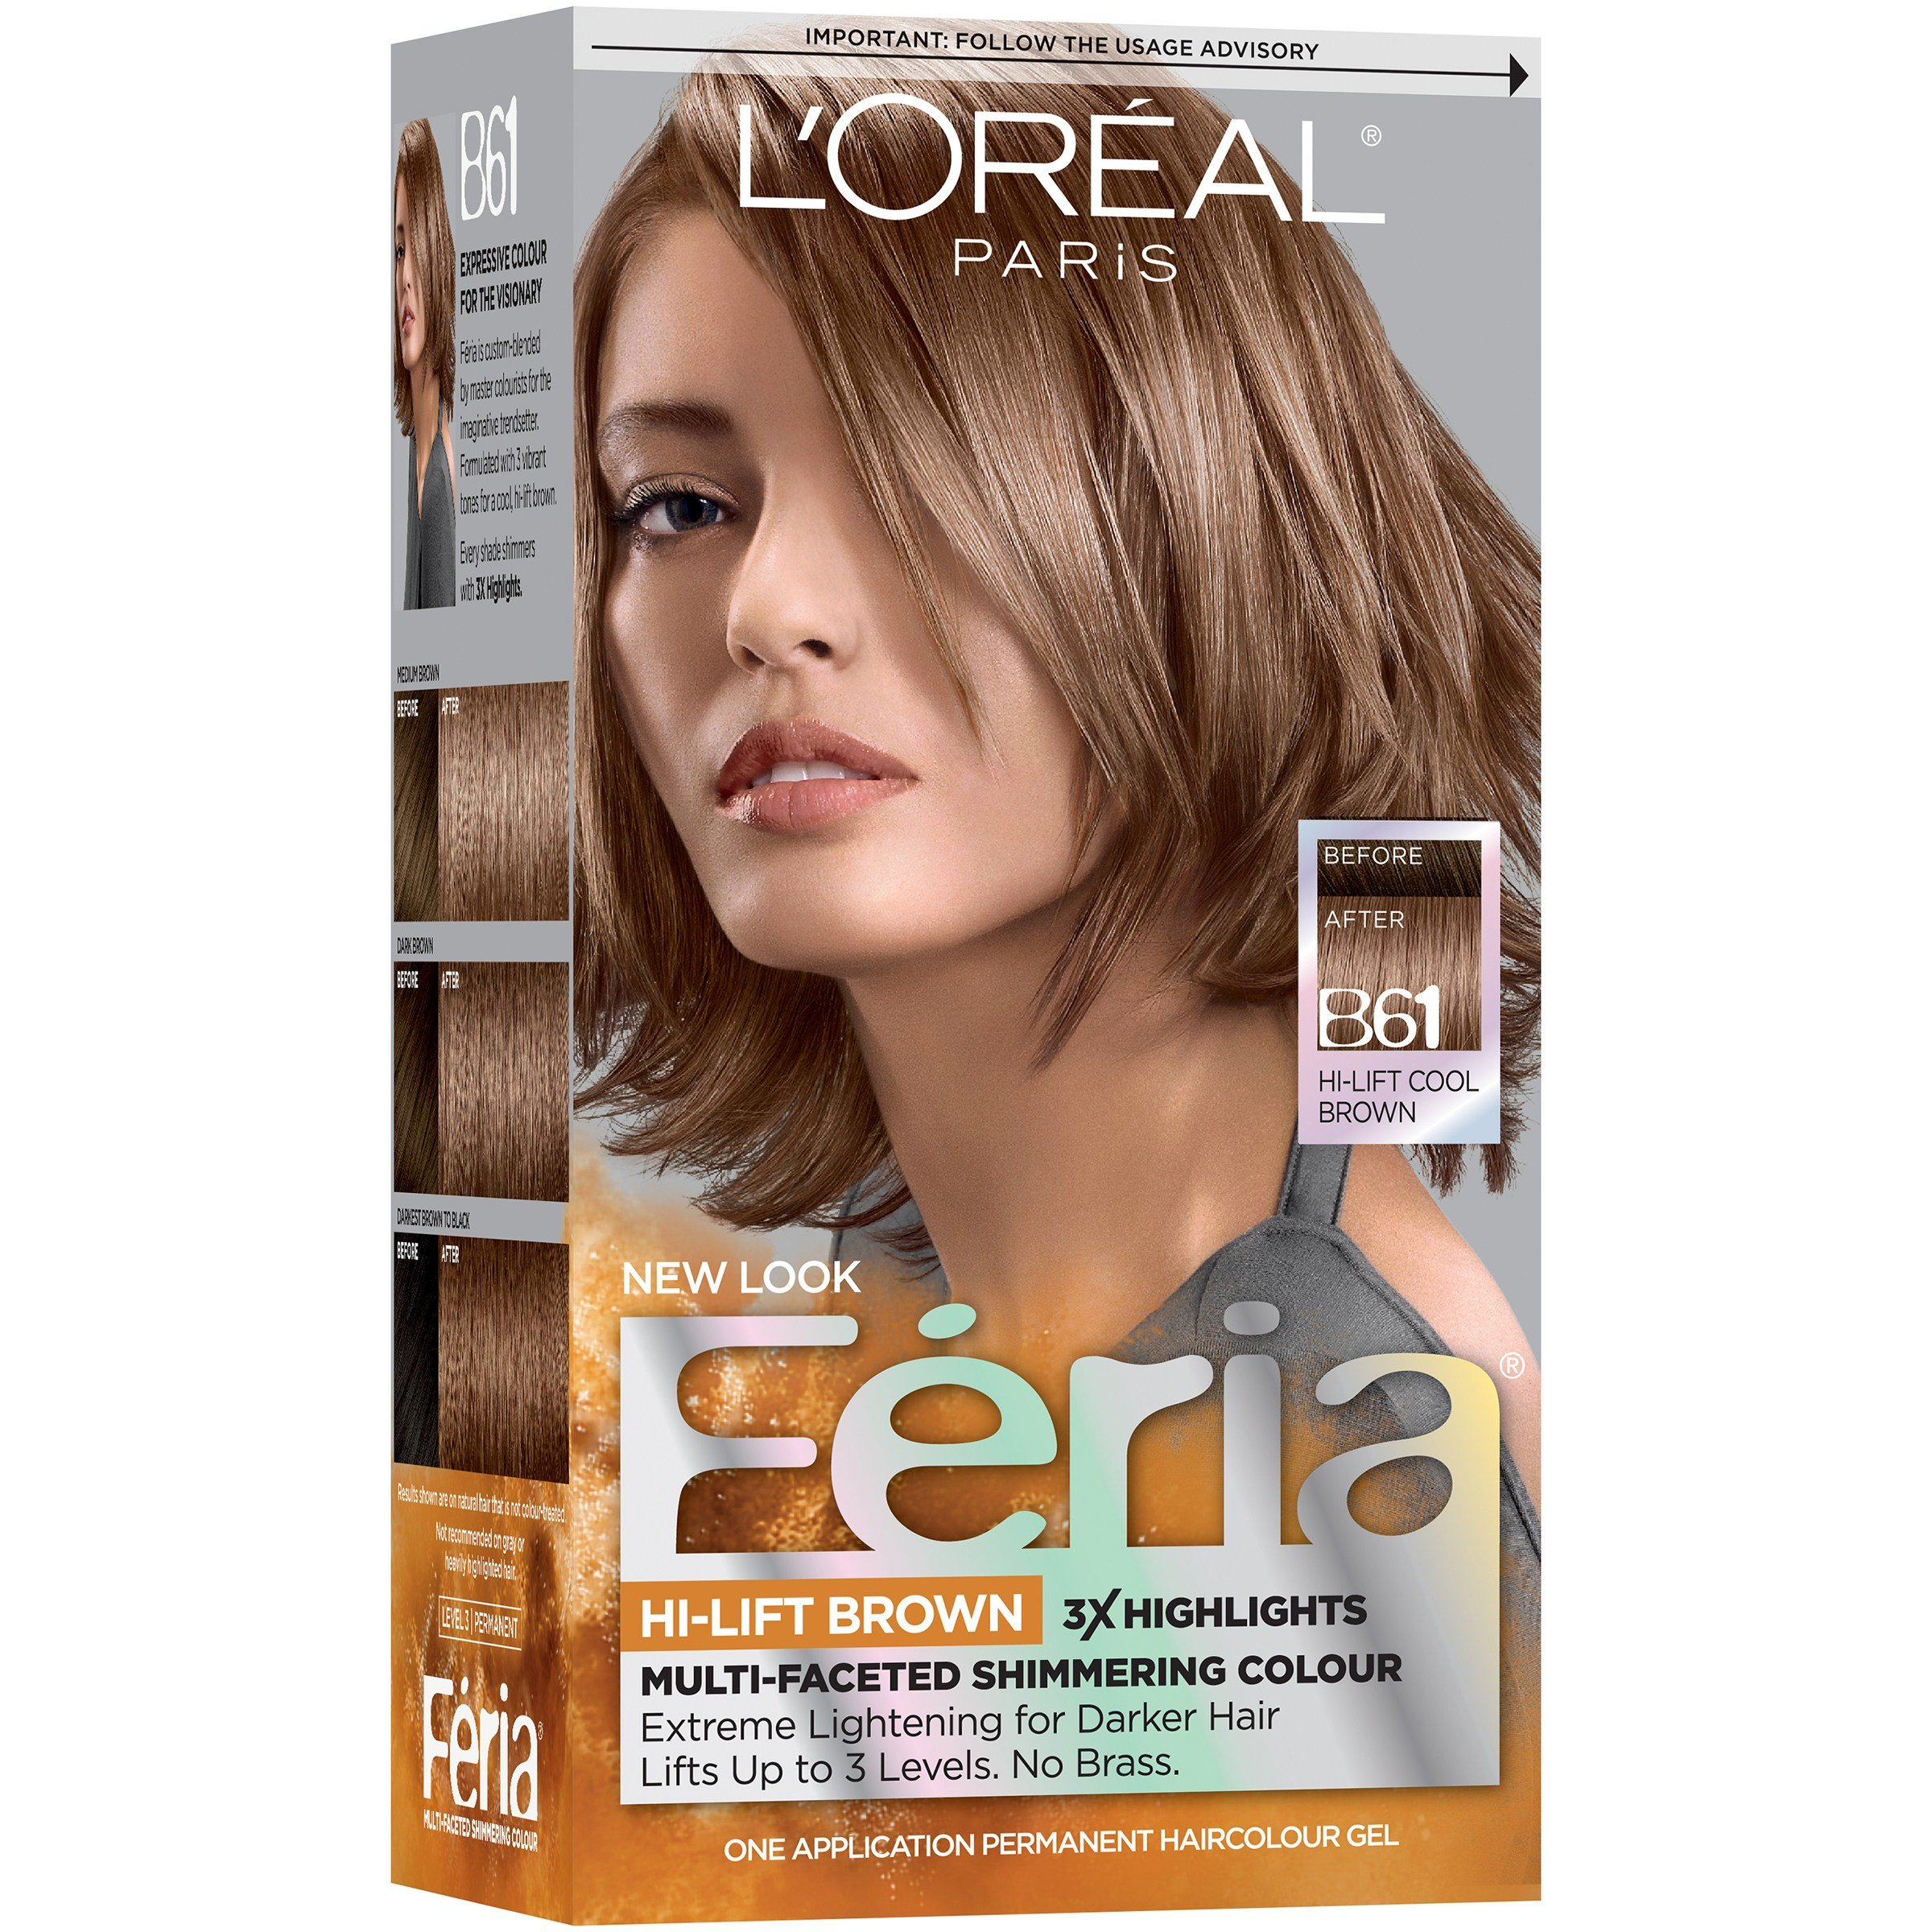 New L Oreal Paris Feria® Multi Faceted Shimmering Colour Hair Ideas With Pictures